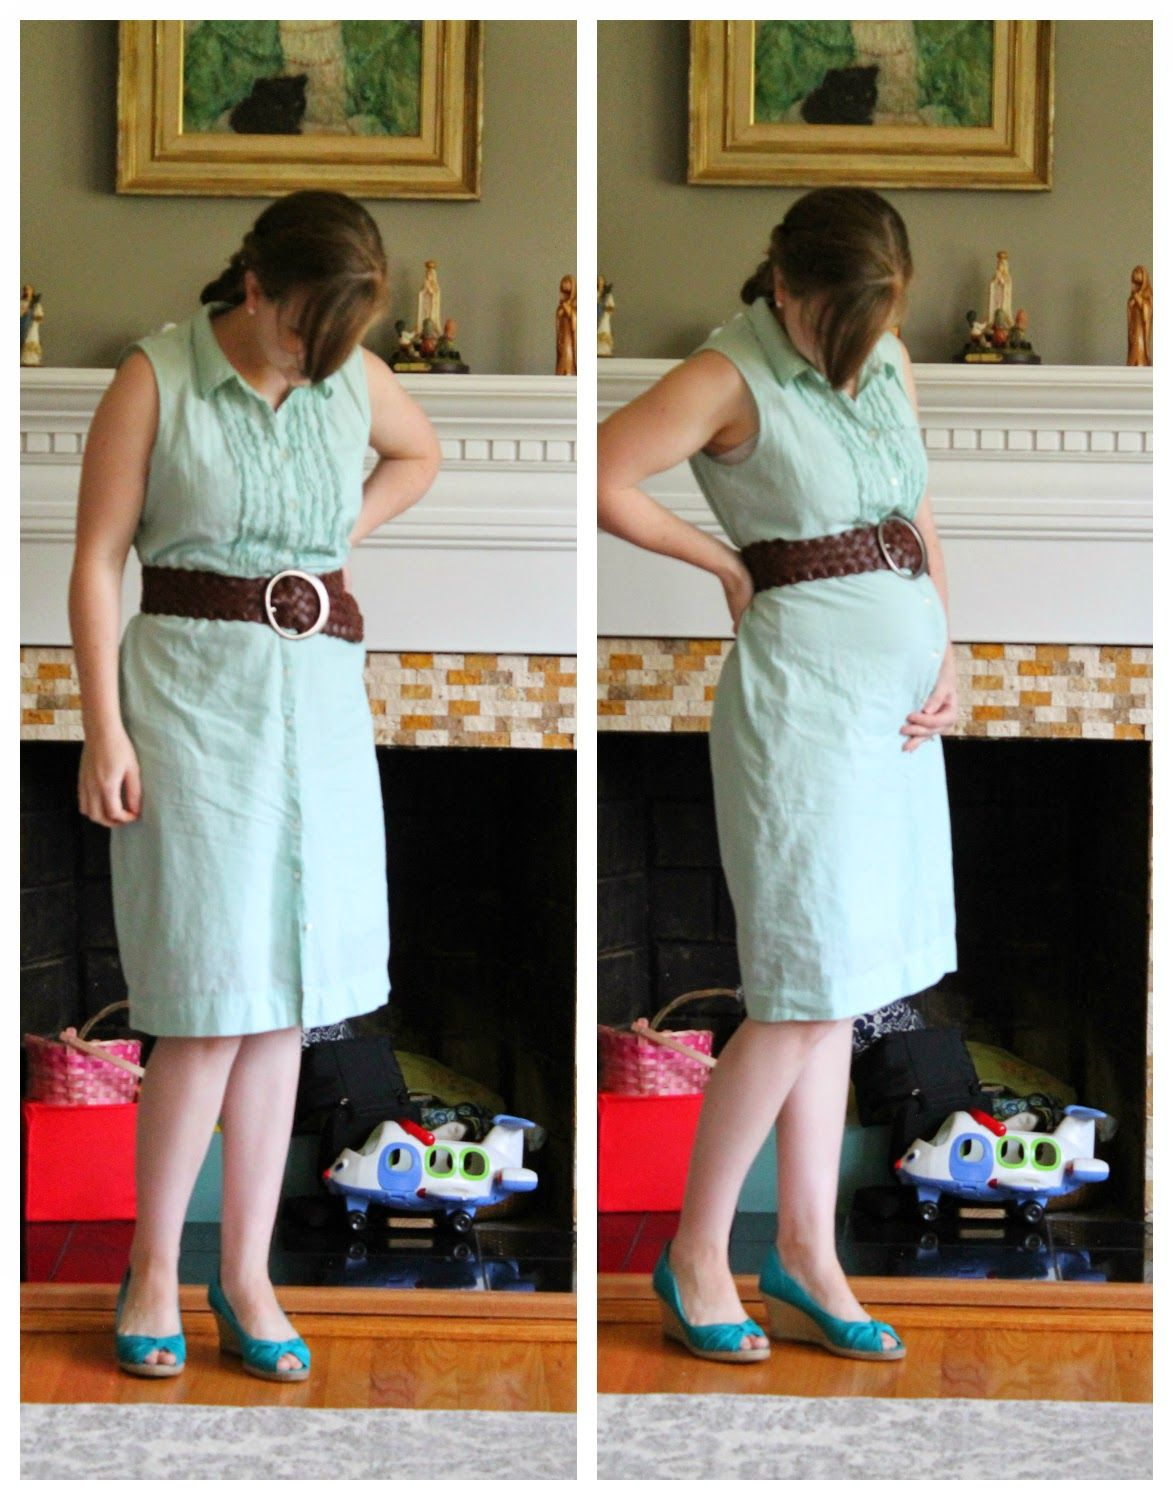 c788048b156 A blog for my mom  Fashion in the First Trimester and Fourth Trimester  7  Quick Tips